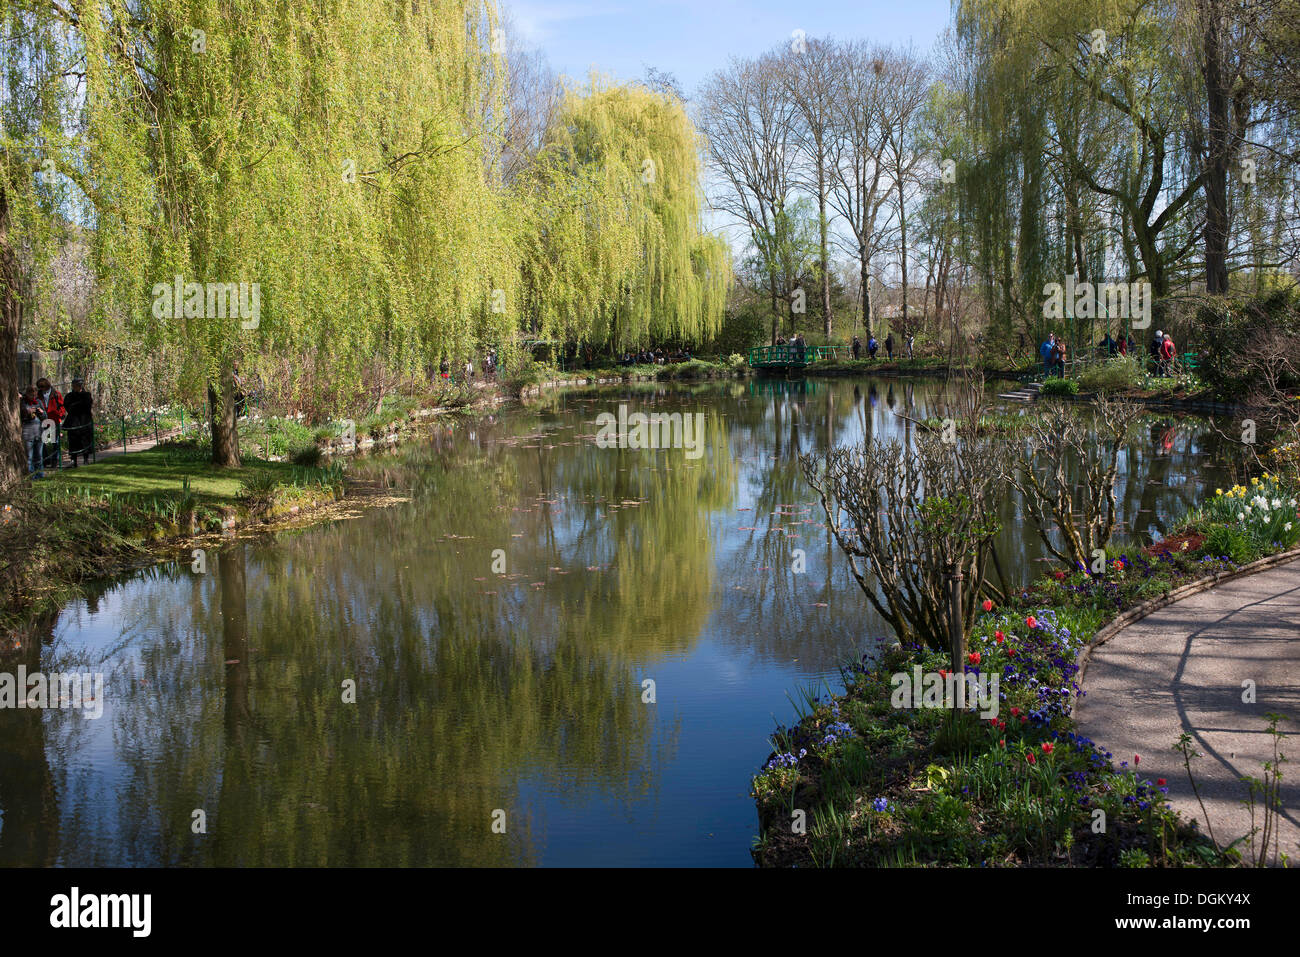 Lily pond in spring, property of Claude Monet, Giverny, Upper Normandy, France, Europe - Stock Image